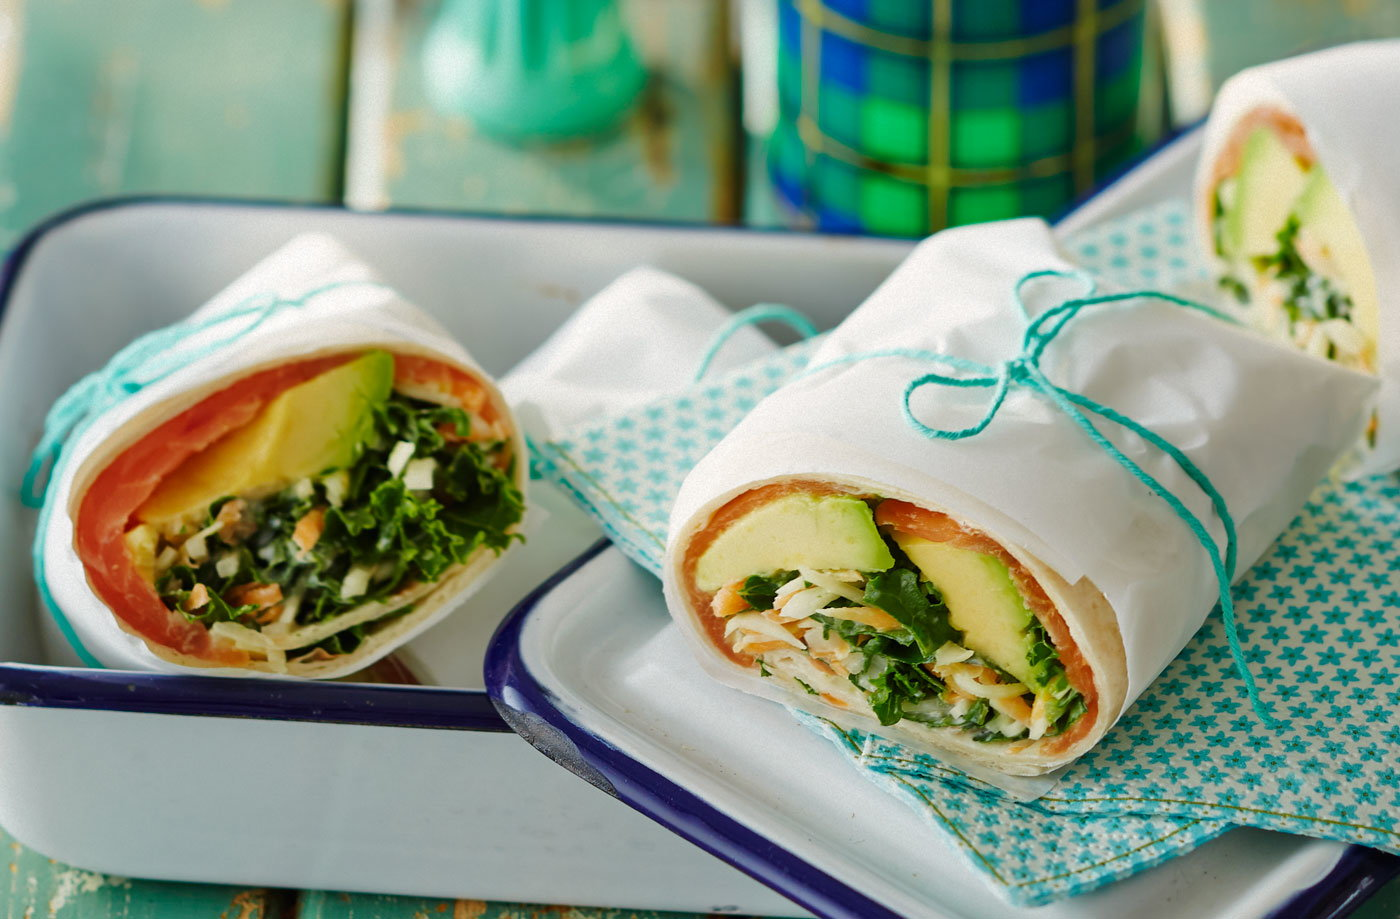 Smoked salmon and avocado wrap with slaw recipe